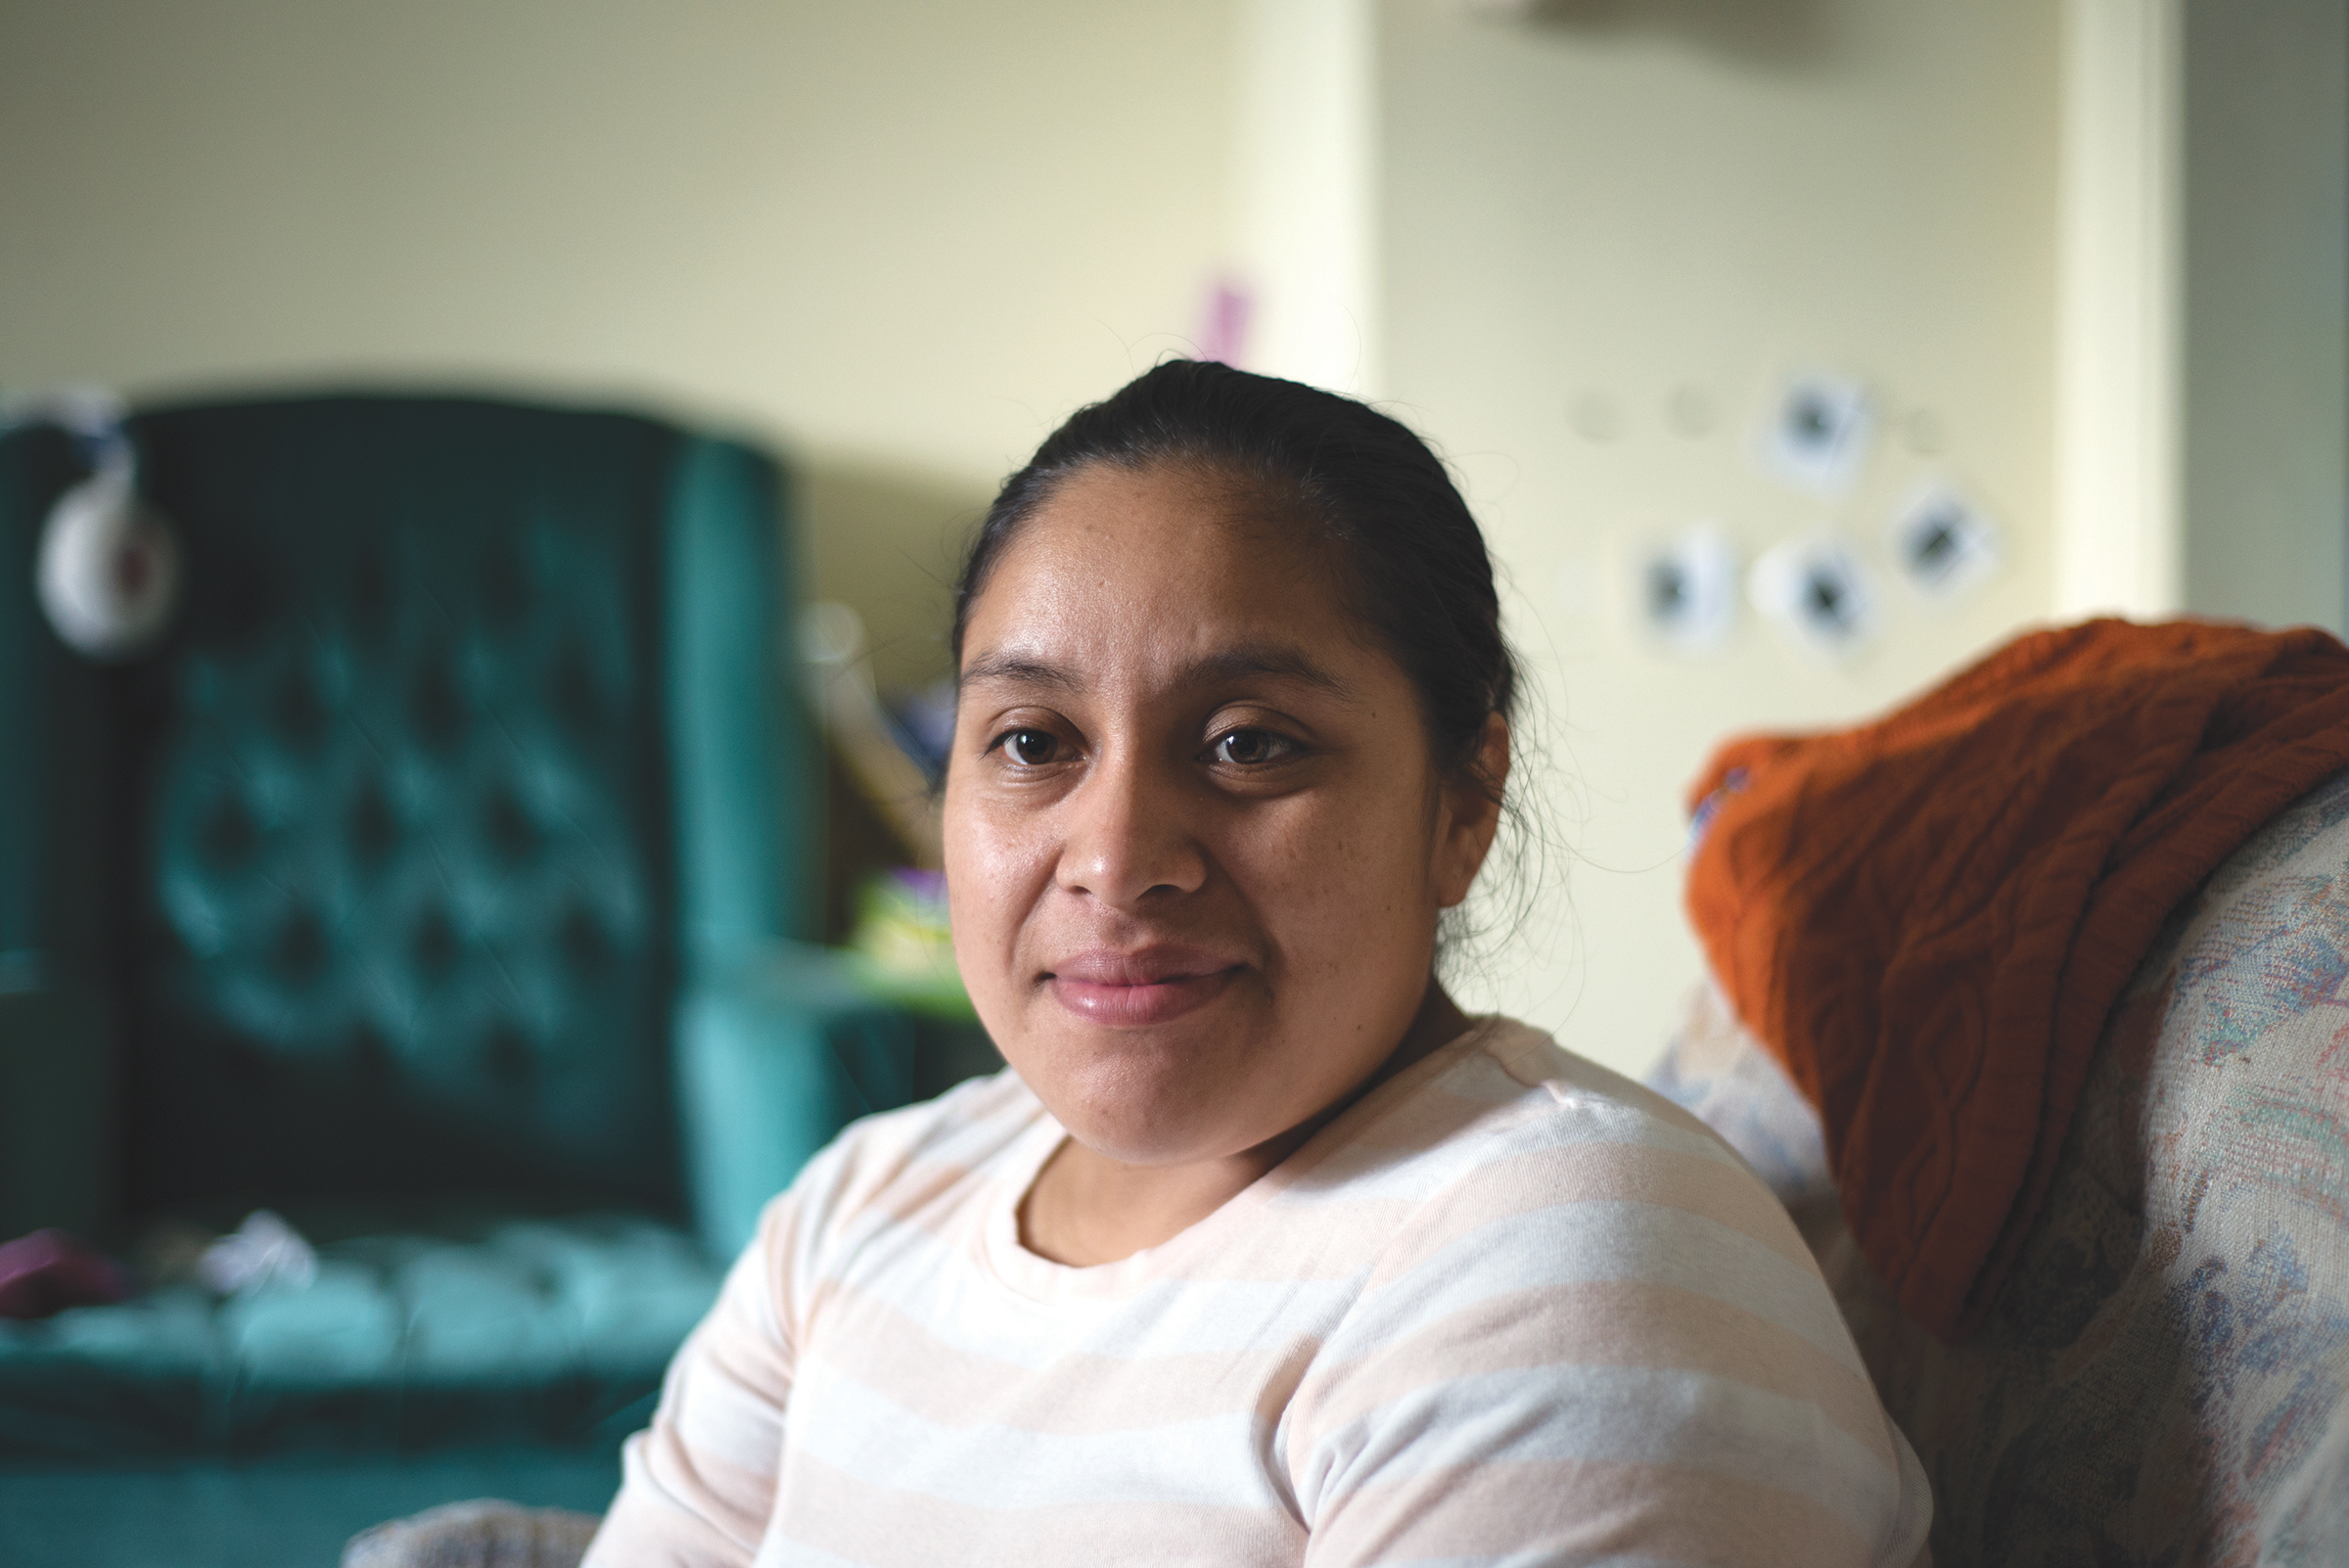 I hope that Hispanics are able to reach their dreams so that their children can have better lives. –Juana | Guatemala